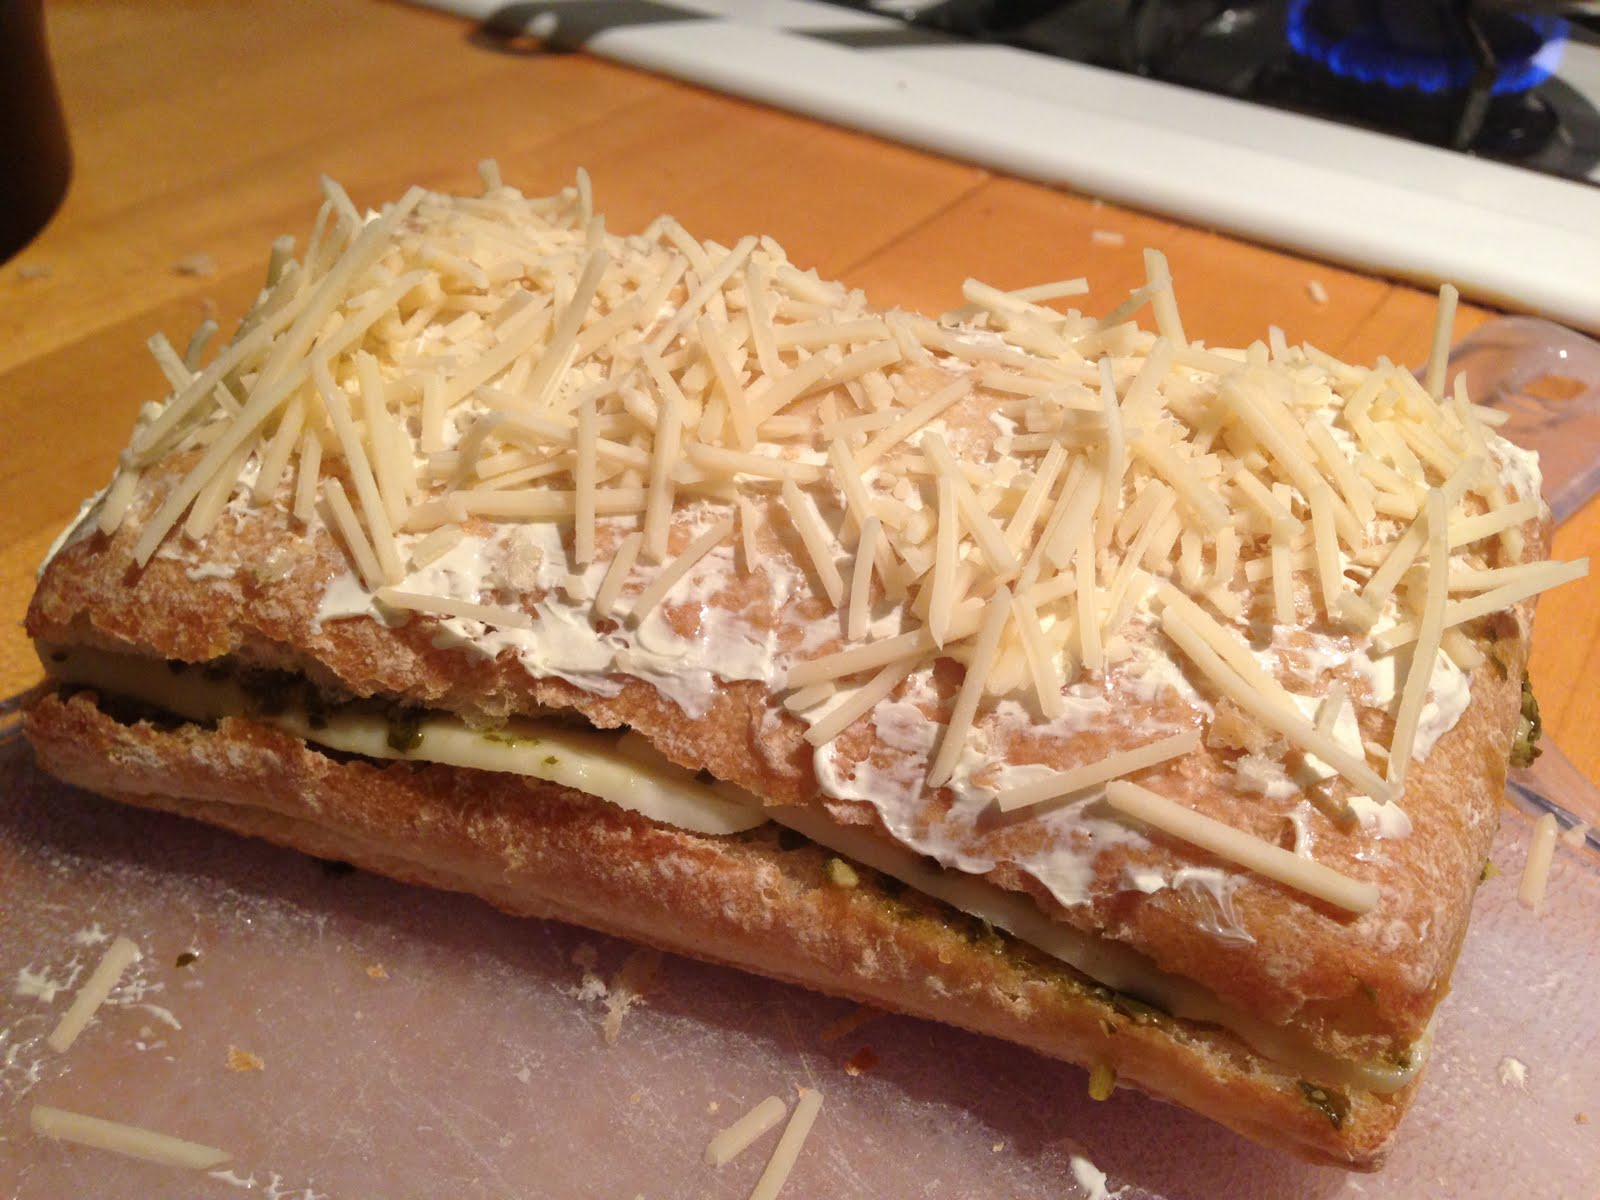 Look, I'm a Cook!: Parmesan Crusted Pesto Grilled Cheese Sandwich